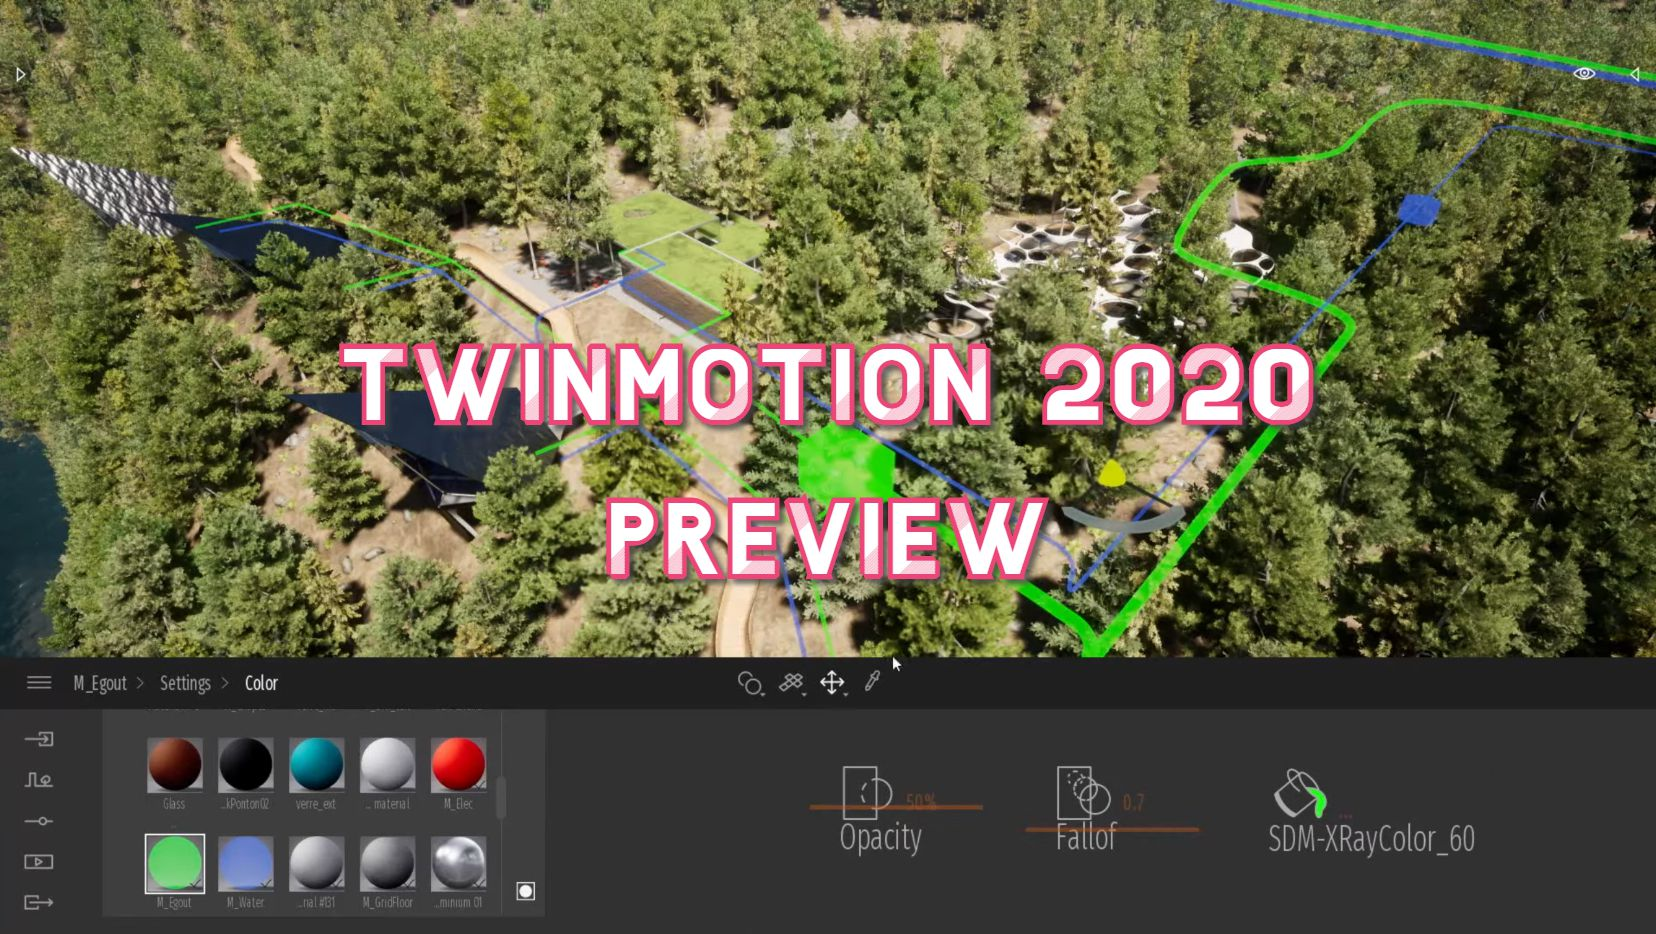 Twinmotion 2020 preview